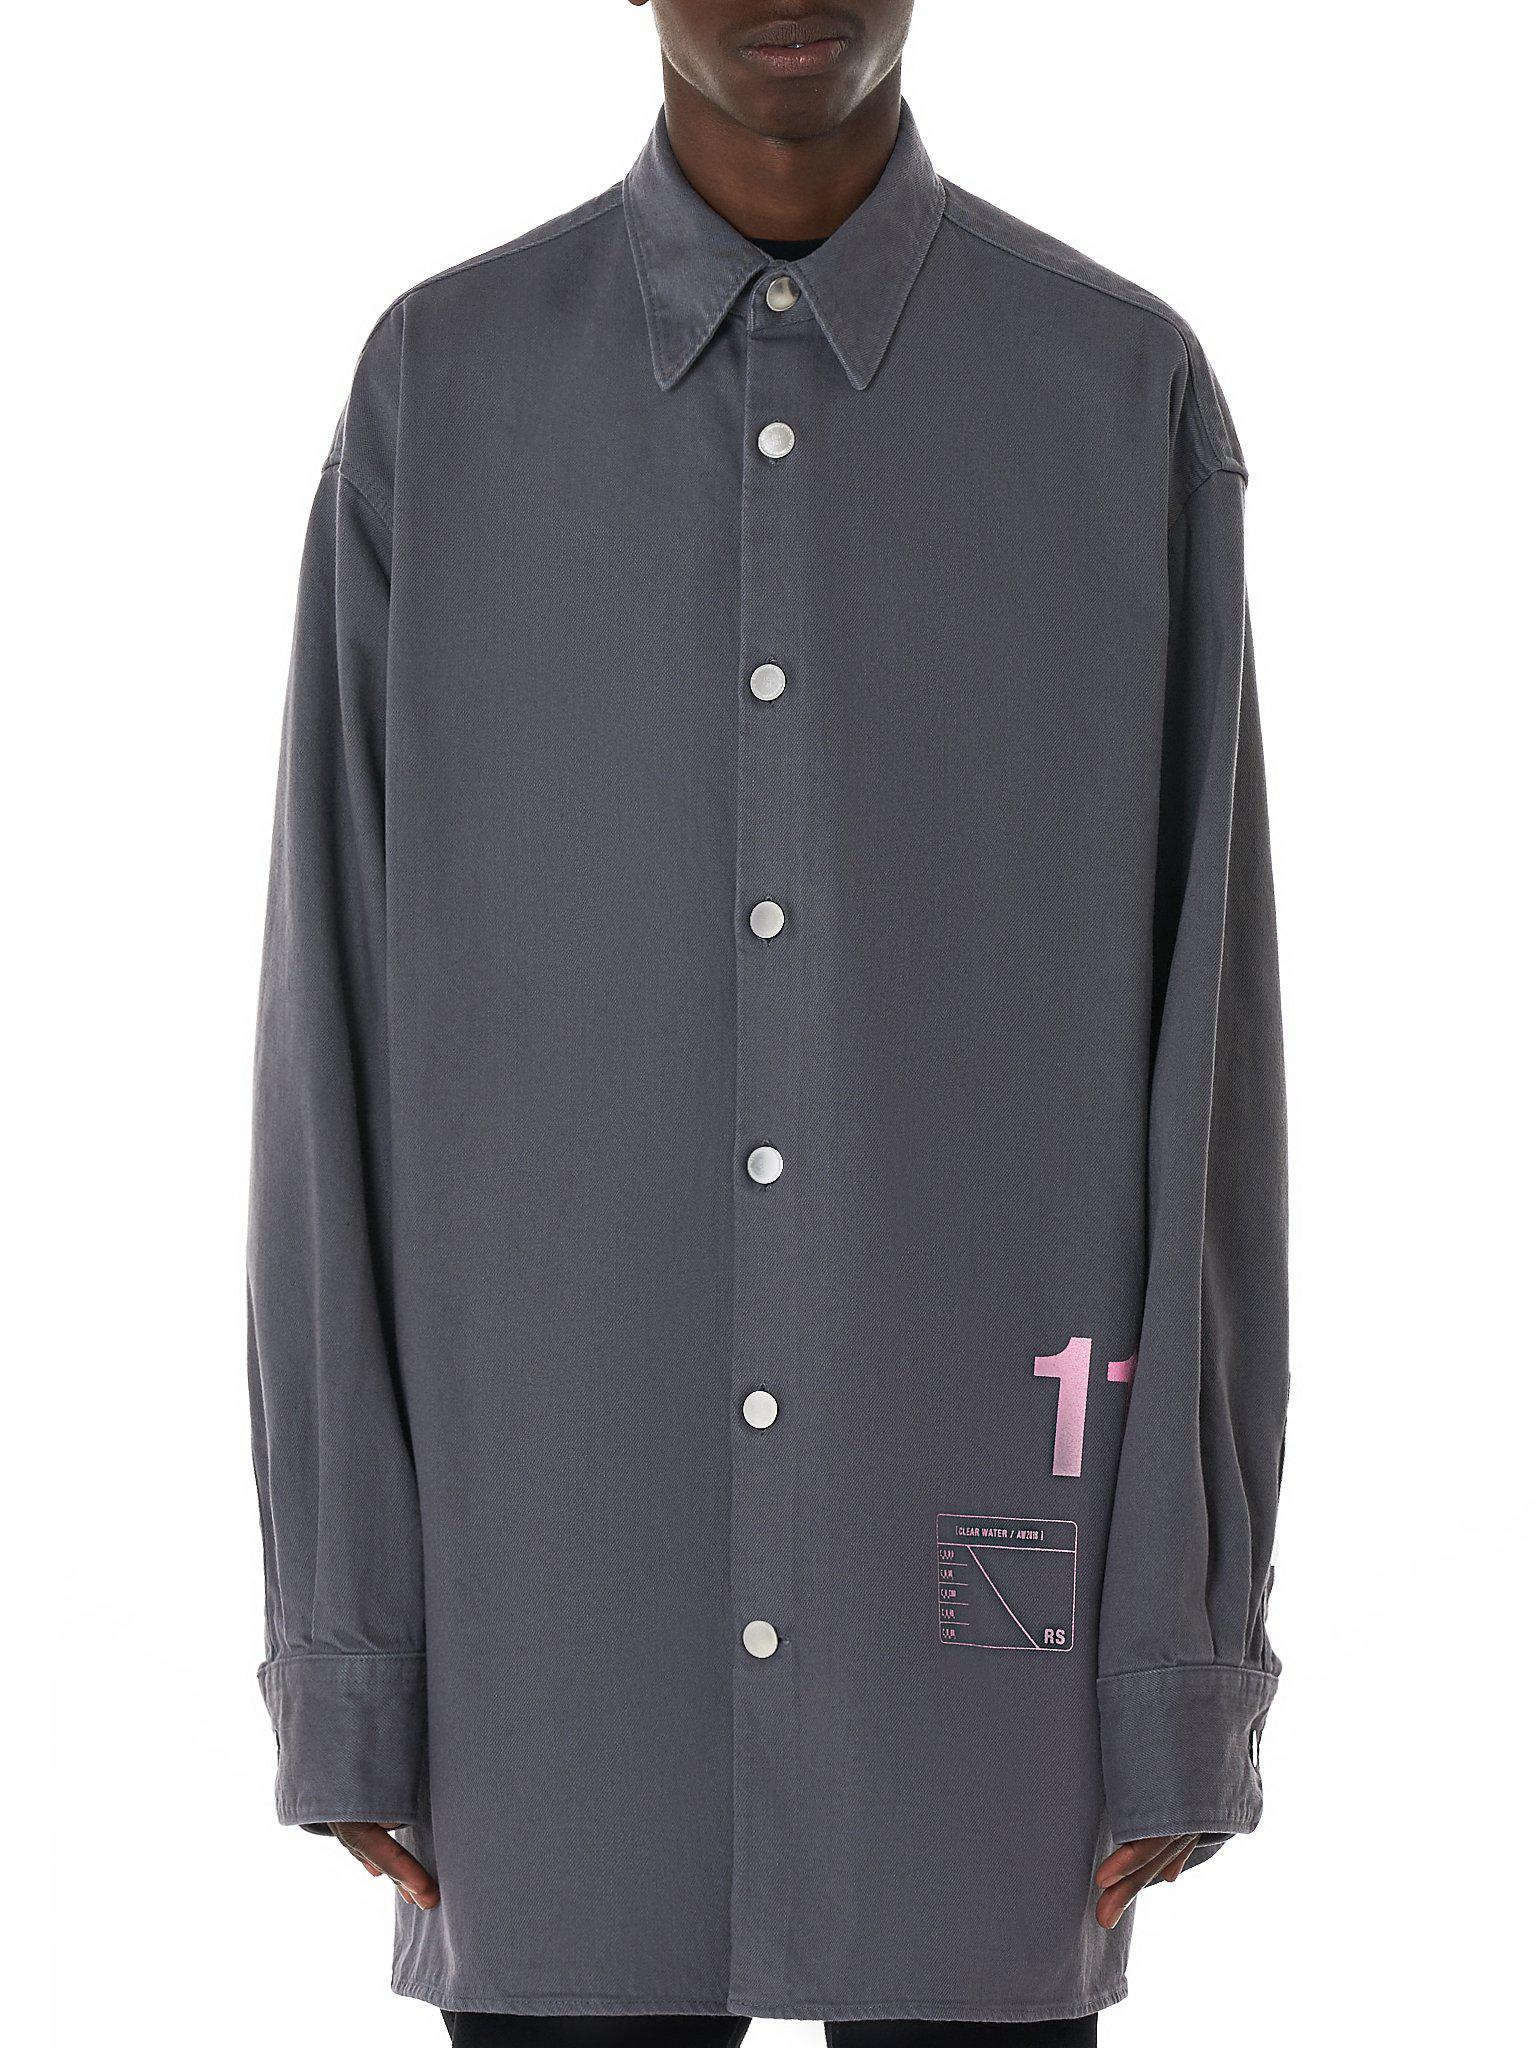 bf786b6a1a Lyst - Raf Simons Easy Fit Denim Shirt in Gray for Men